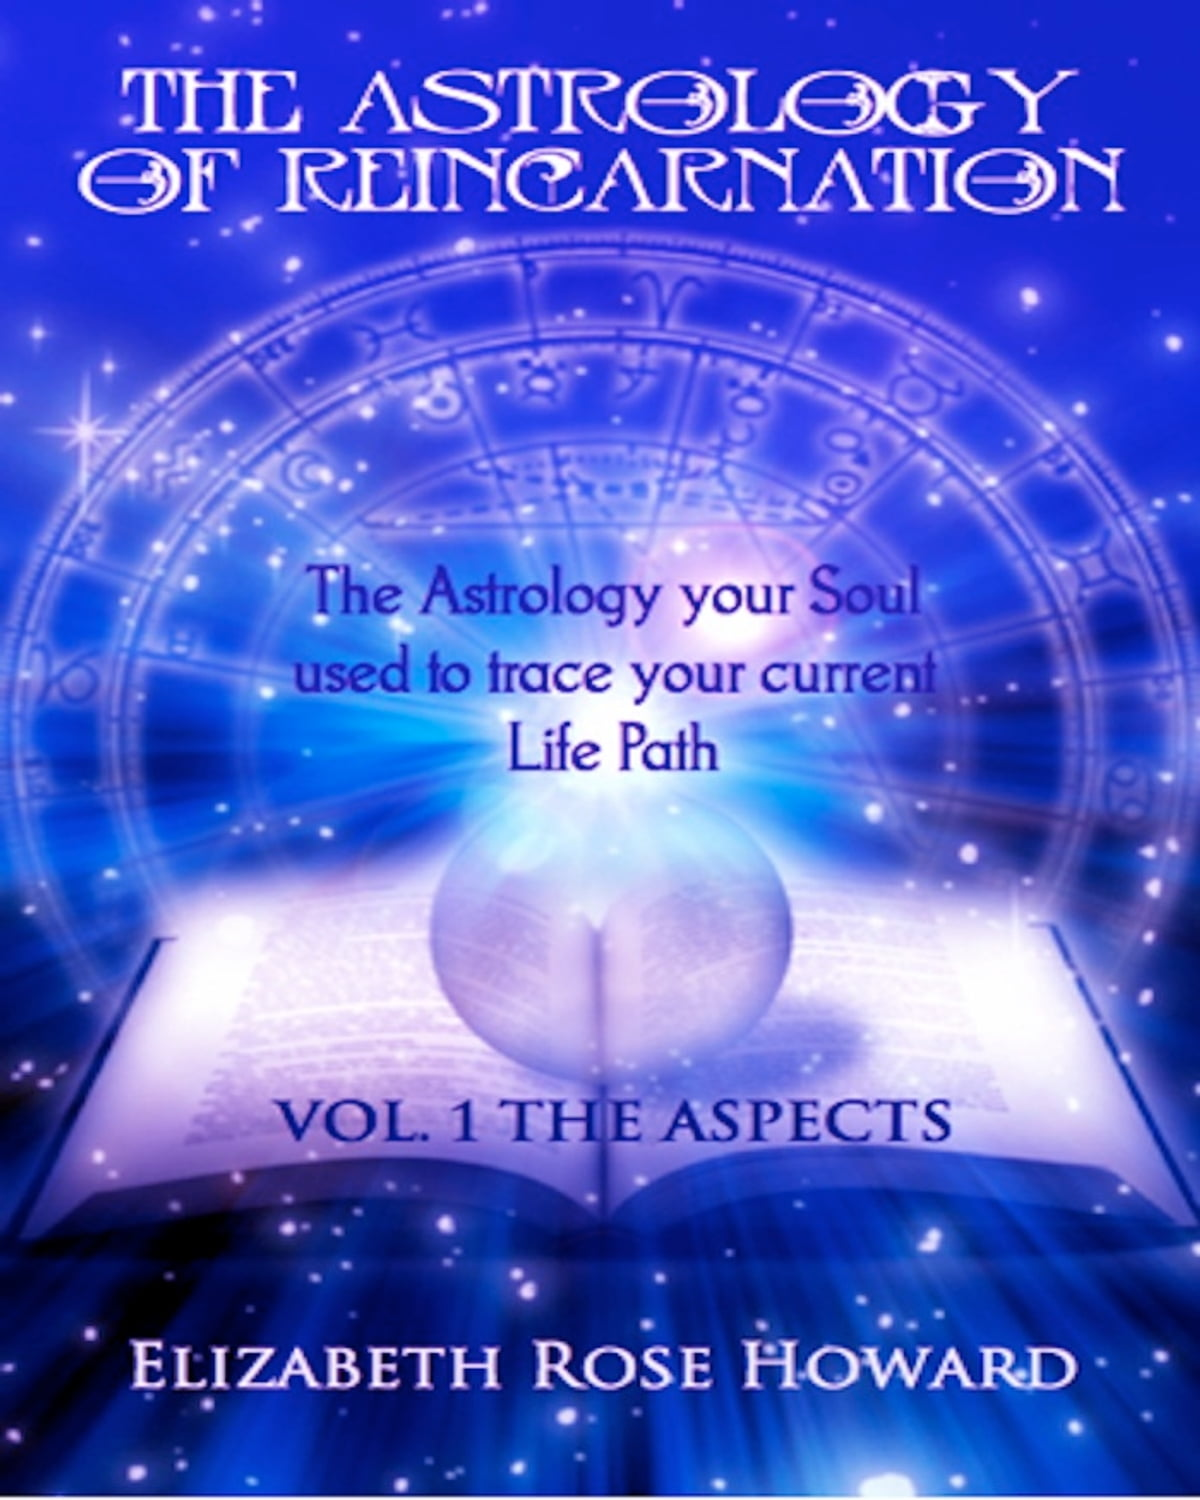 The Astrology Of Reincarnation: Part Ii The Aspects Ebook By Elizabeth Rose  Howard  1230000095505  Kobo